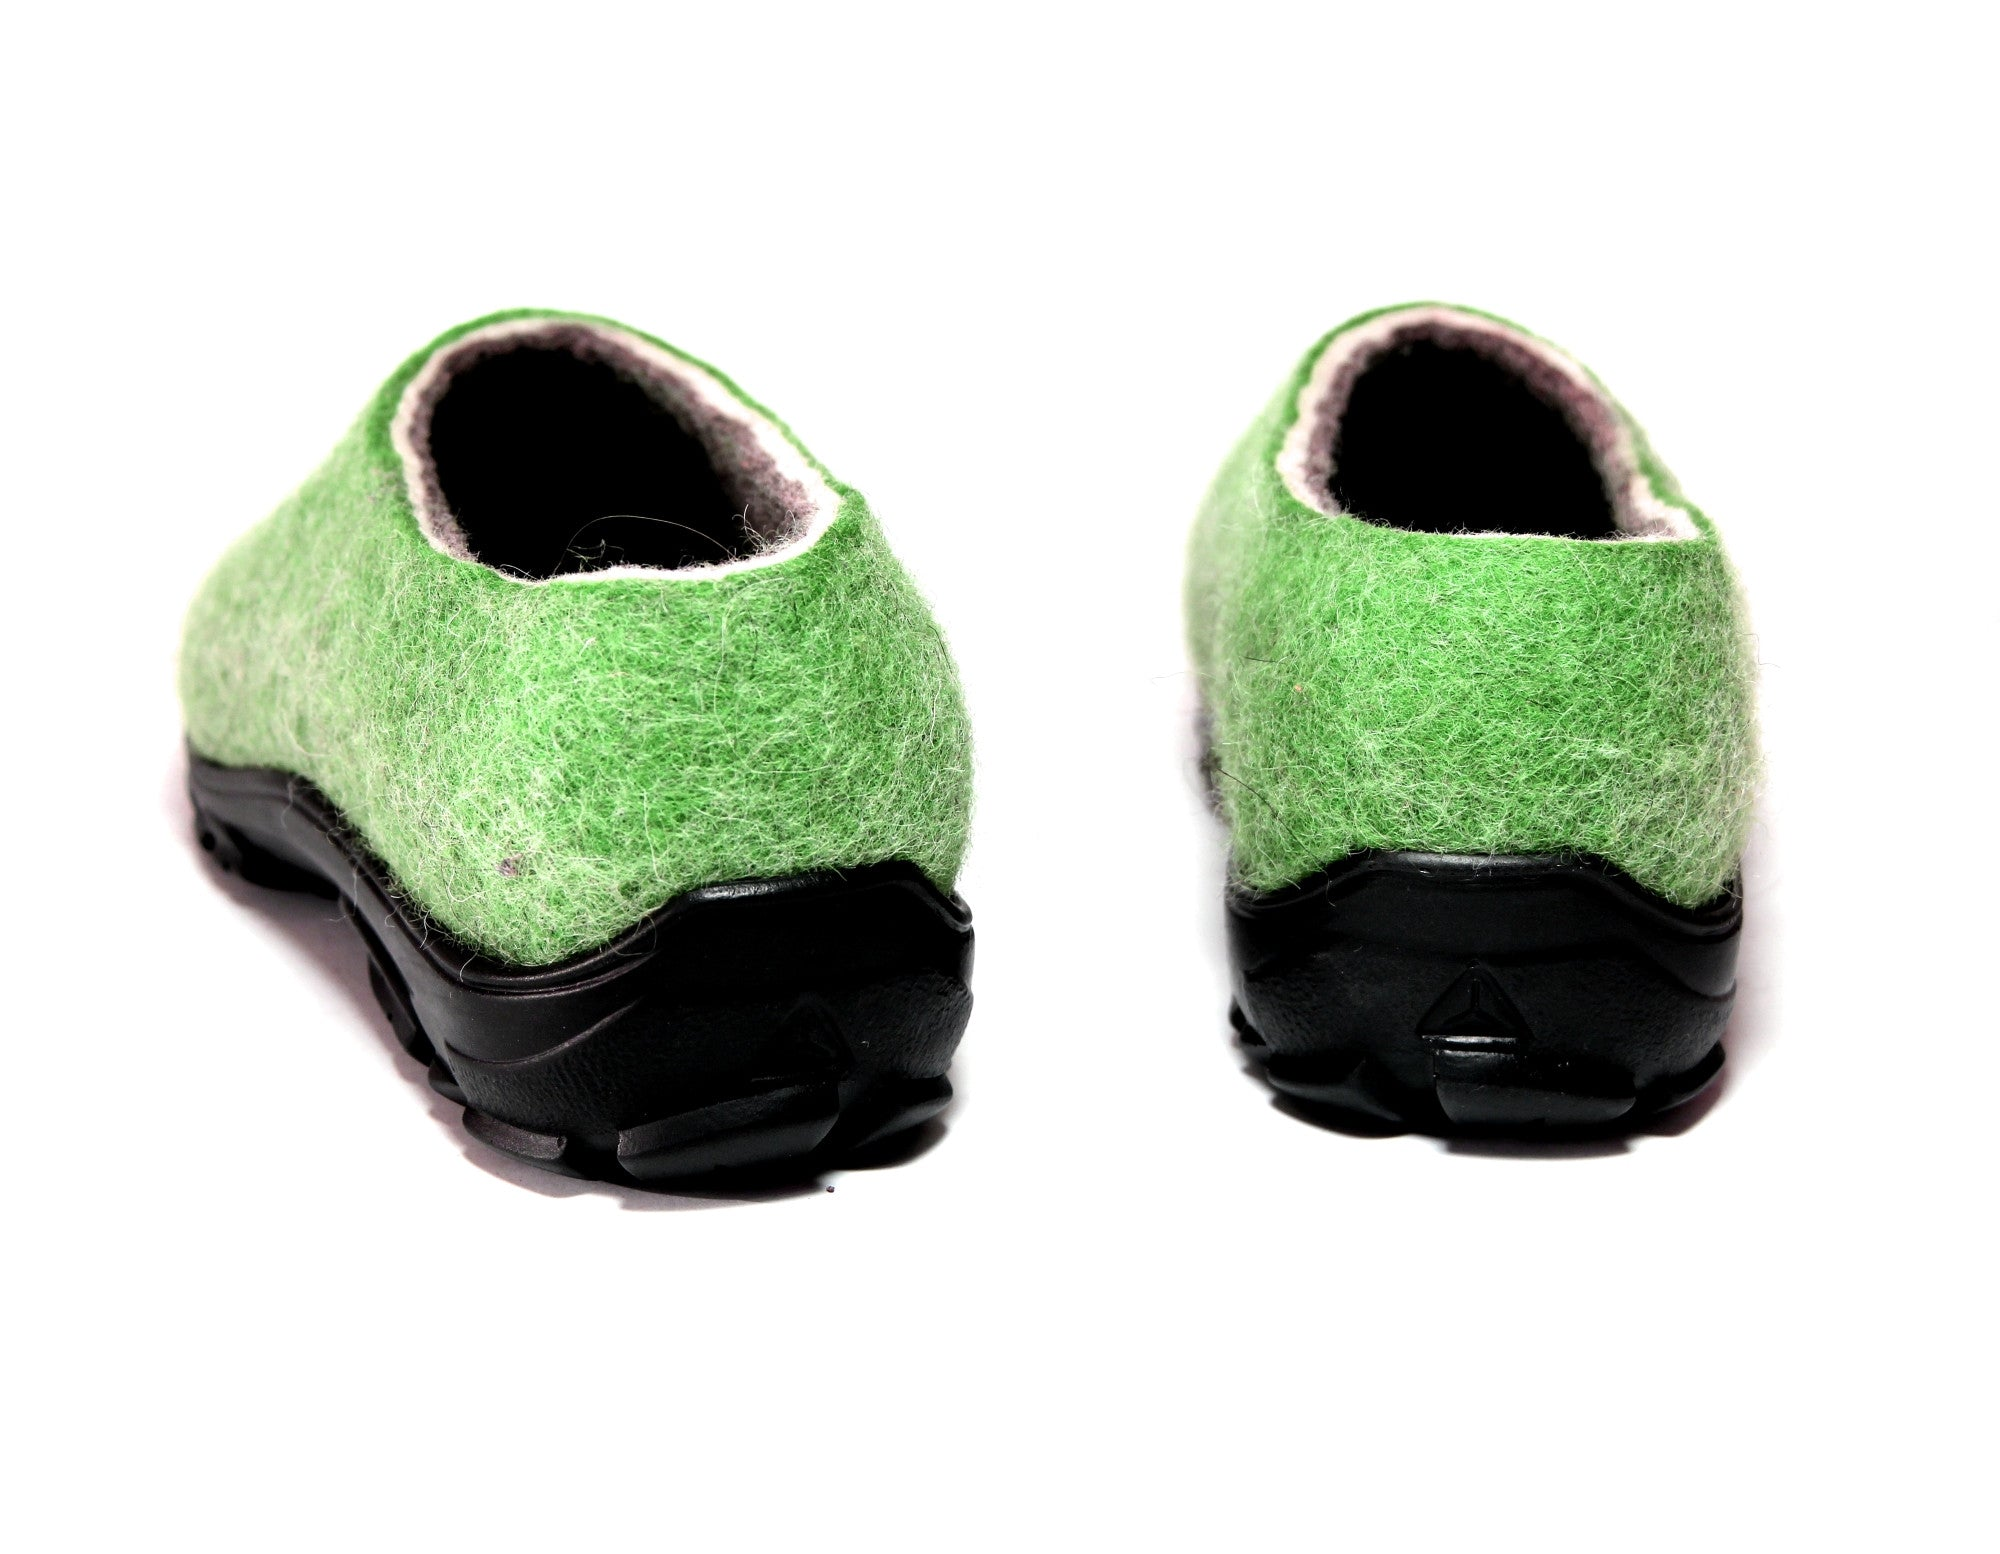 Organic Wool Felt Travel Shoes for Men